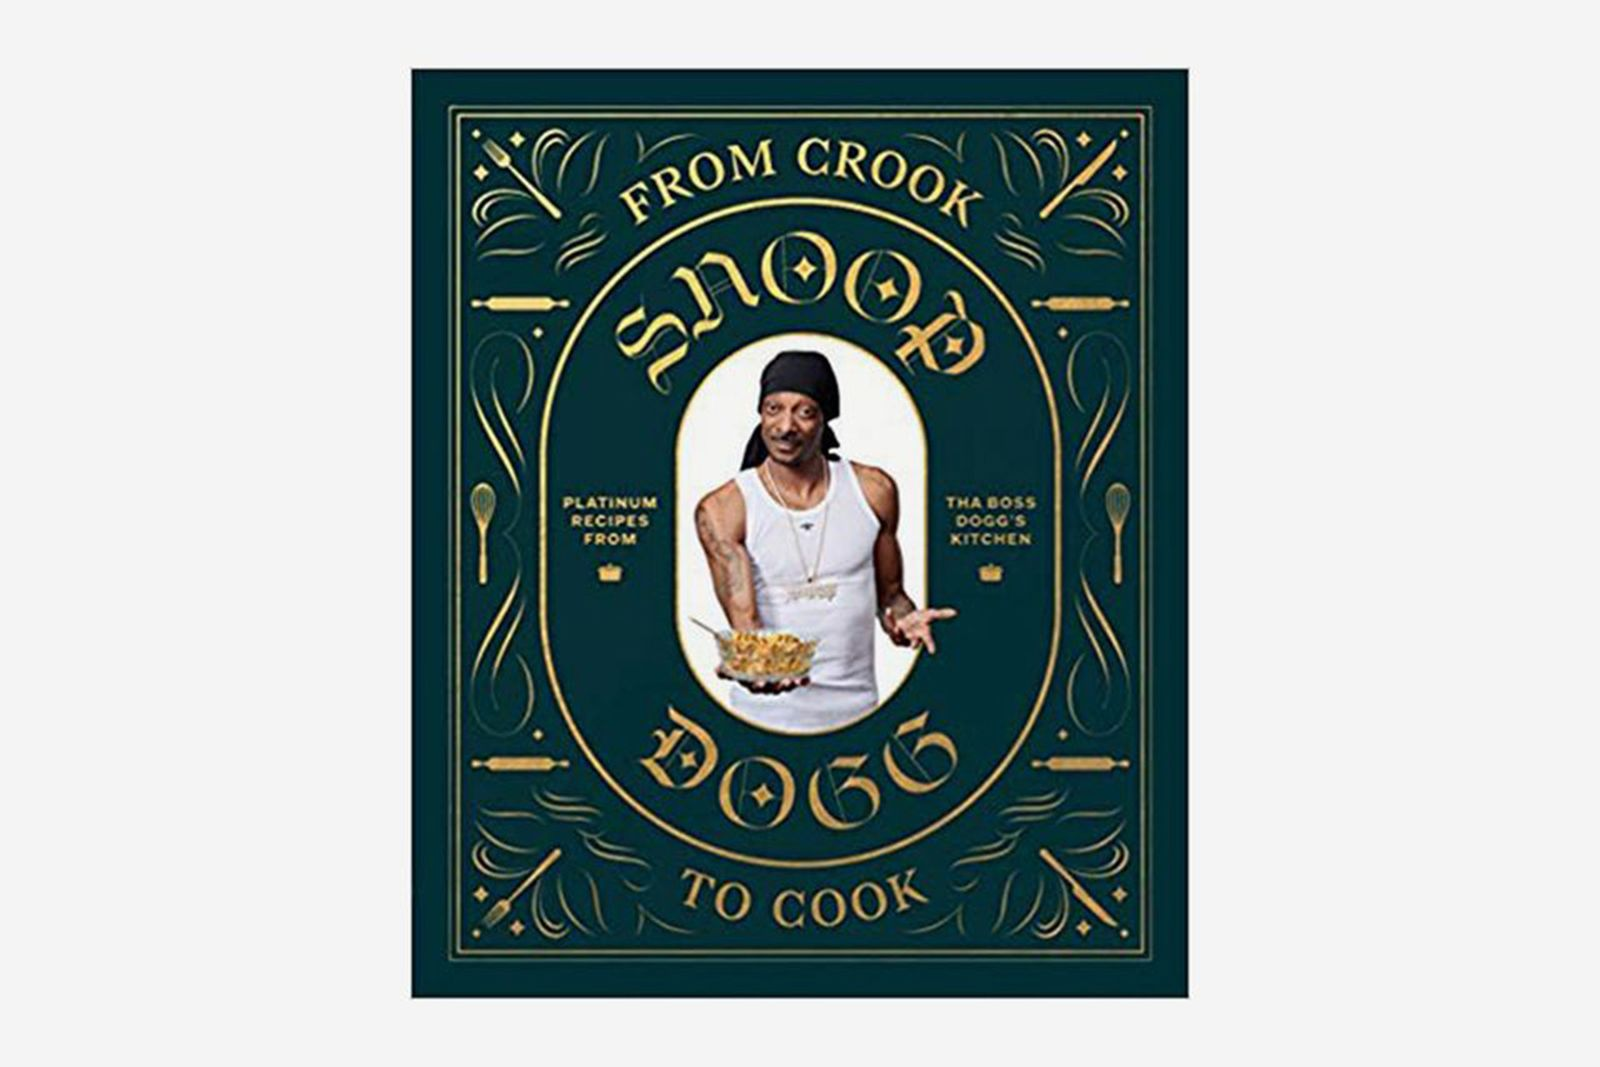 snoop dogg book From Crook to Cook